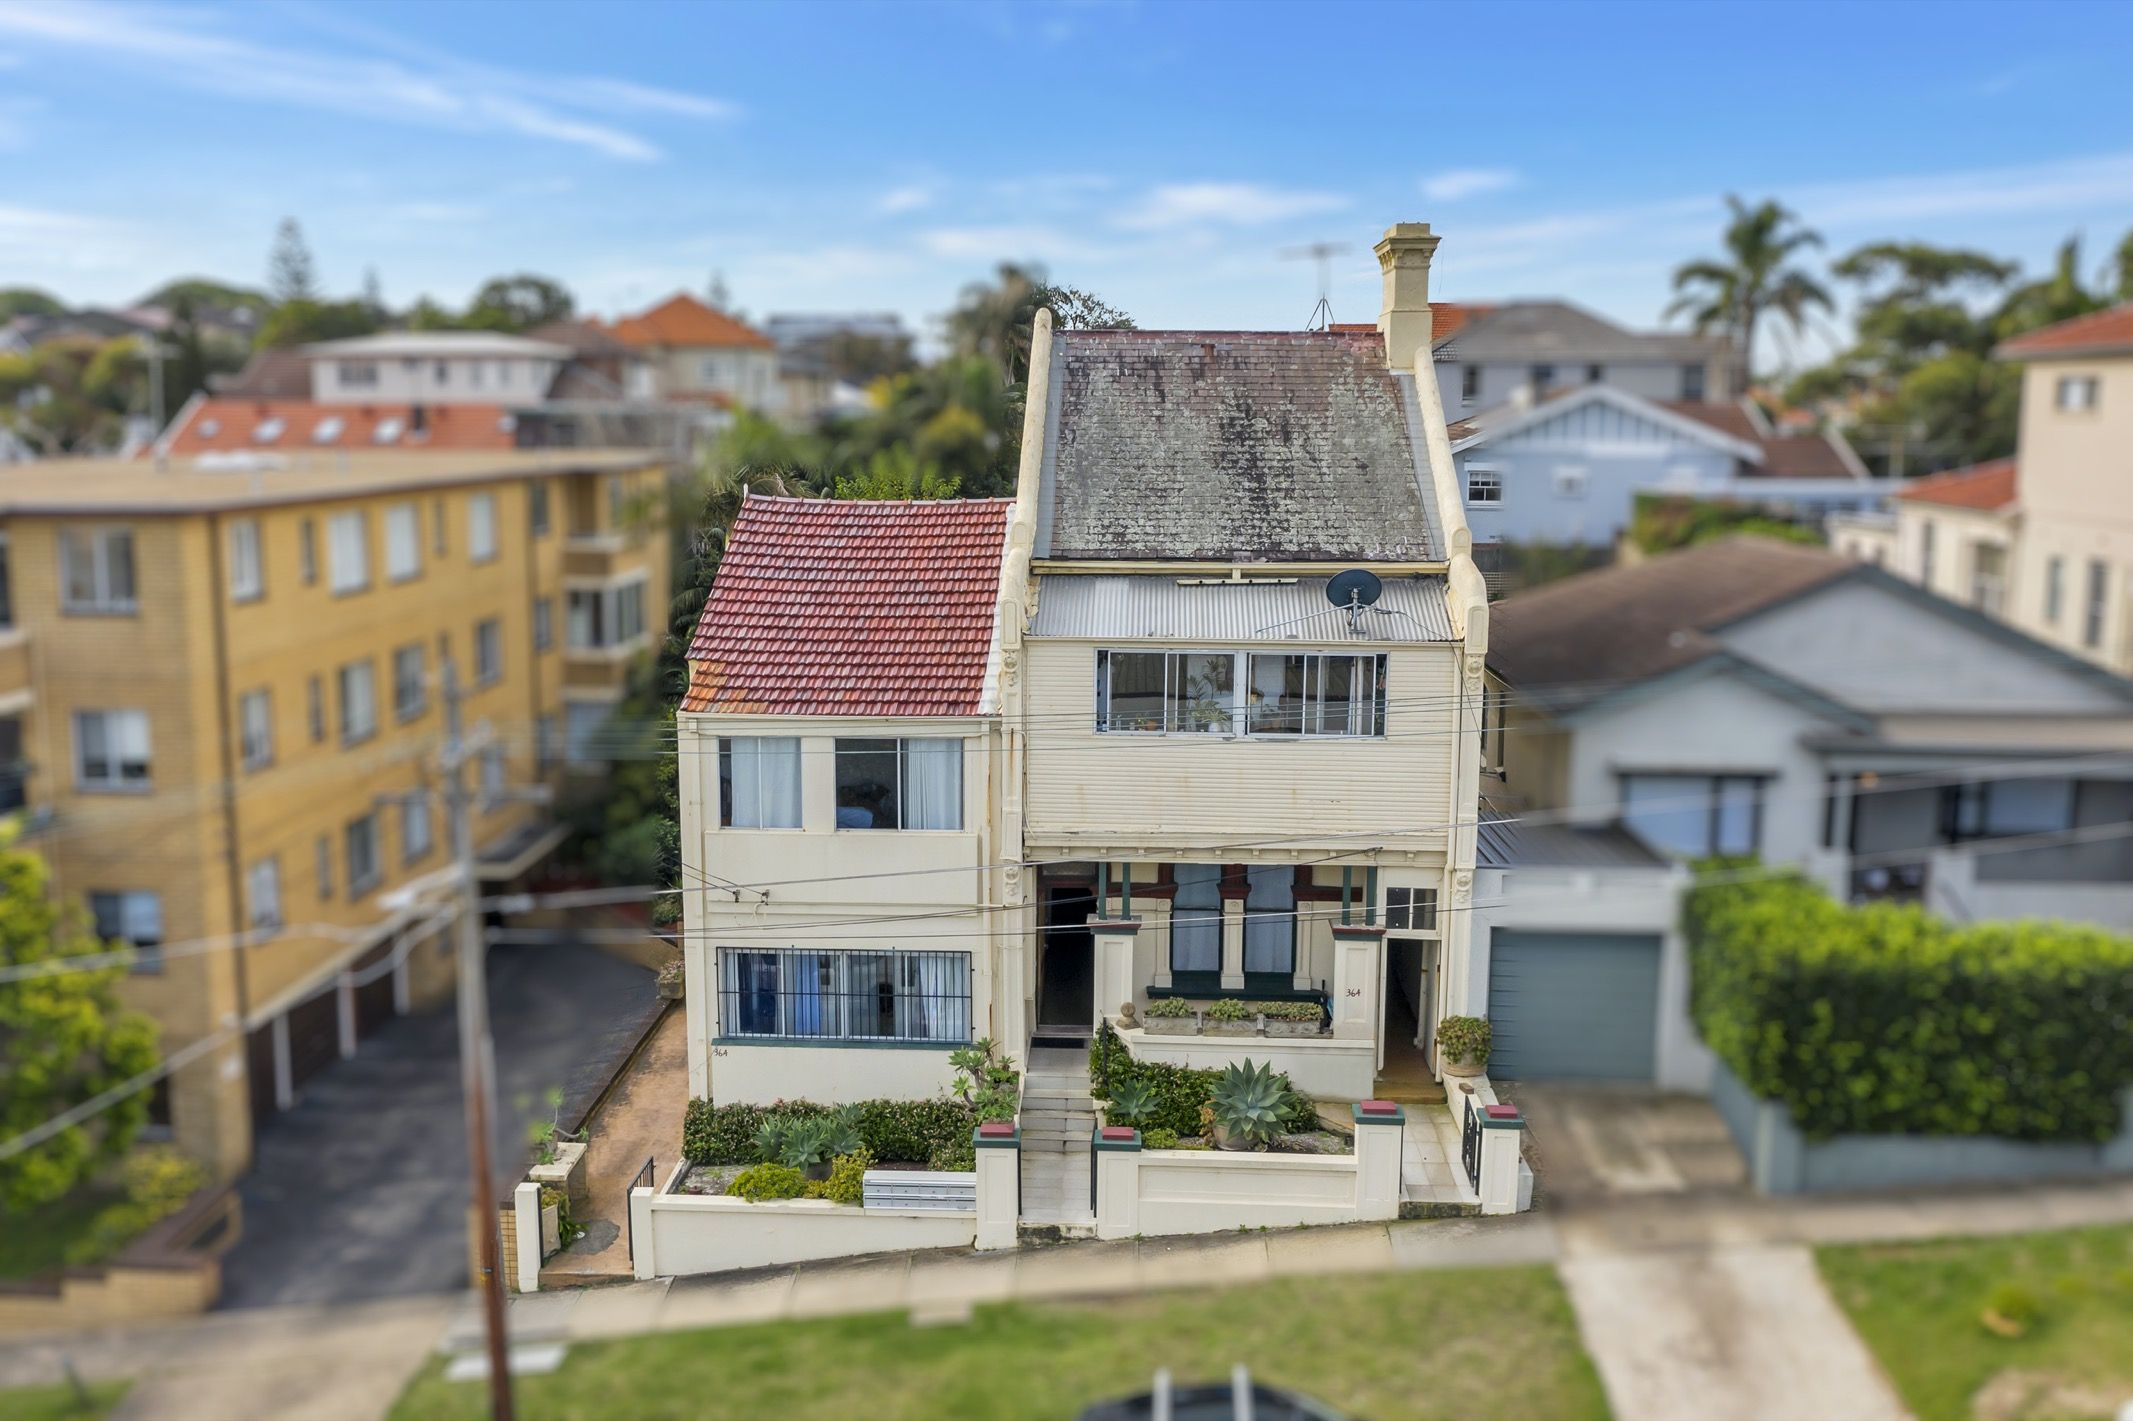 364 & 364a Alison Road Coogee 2034